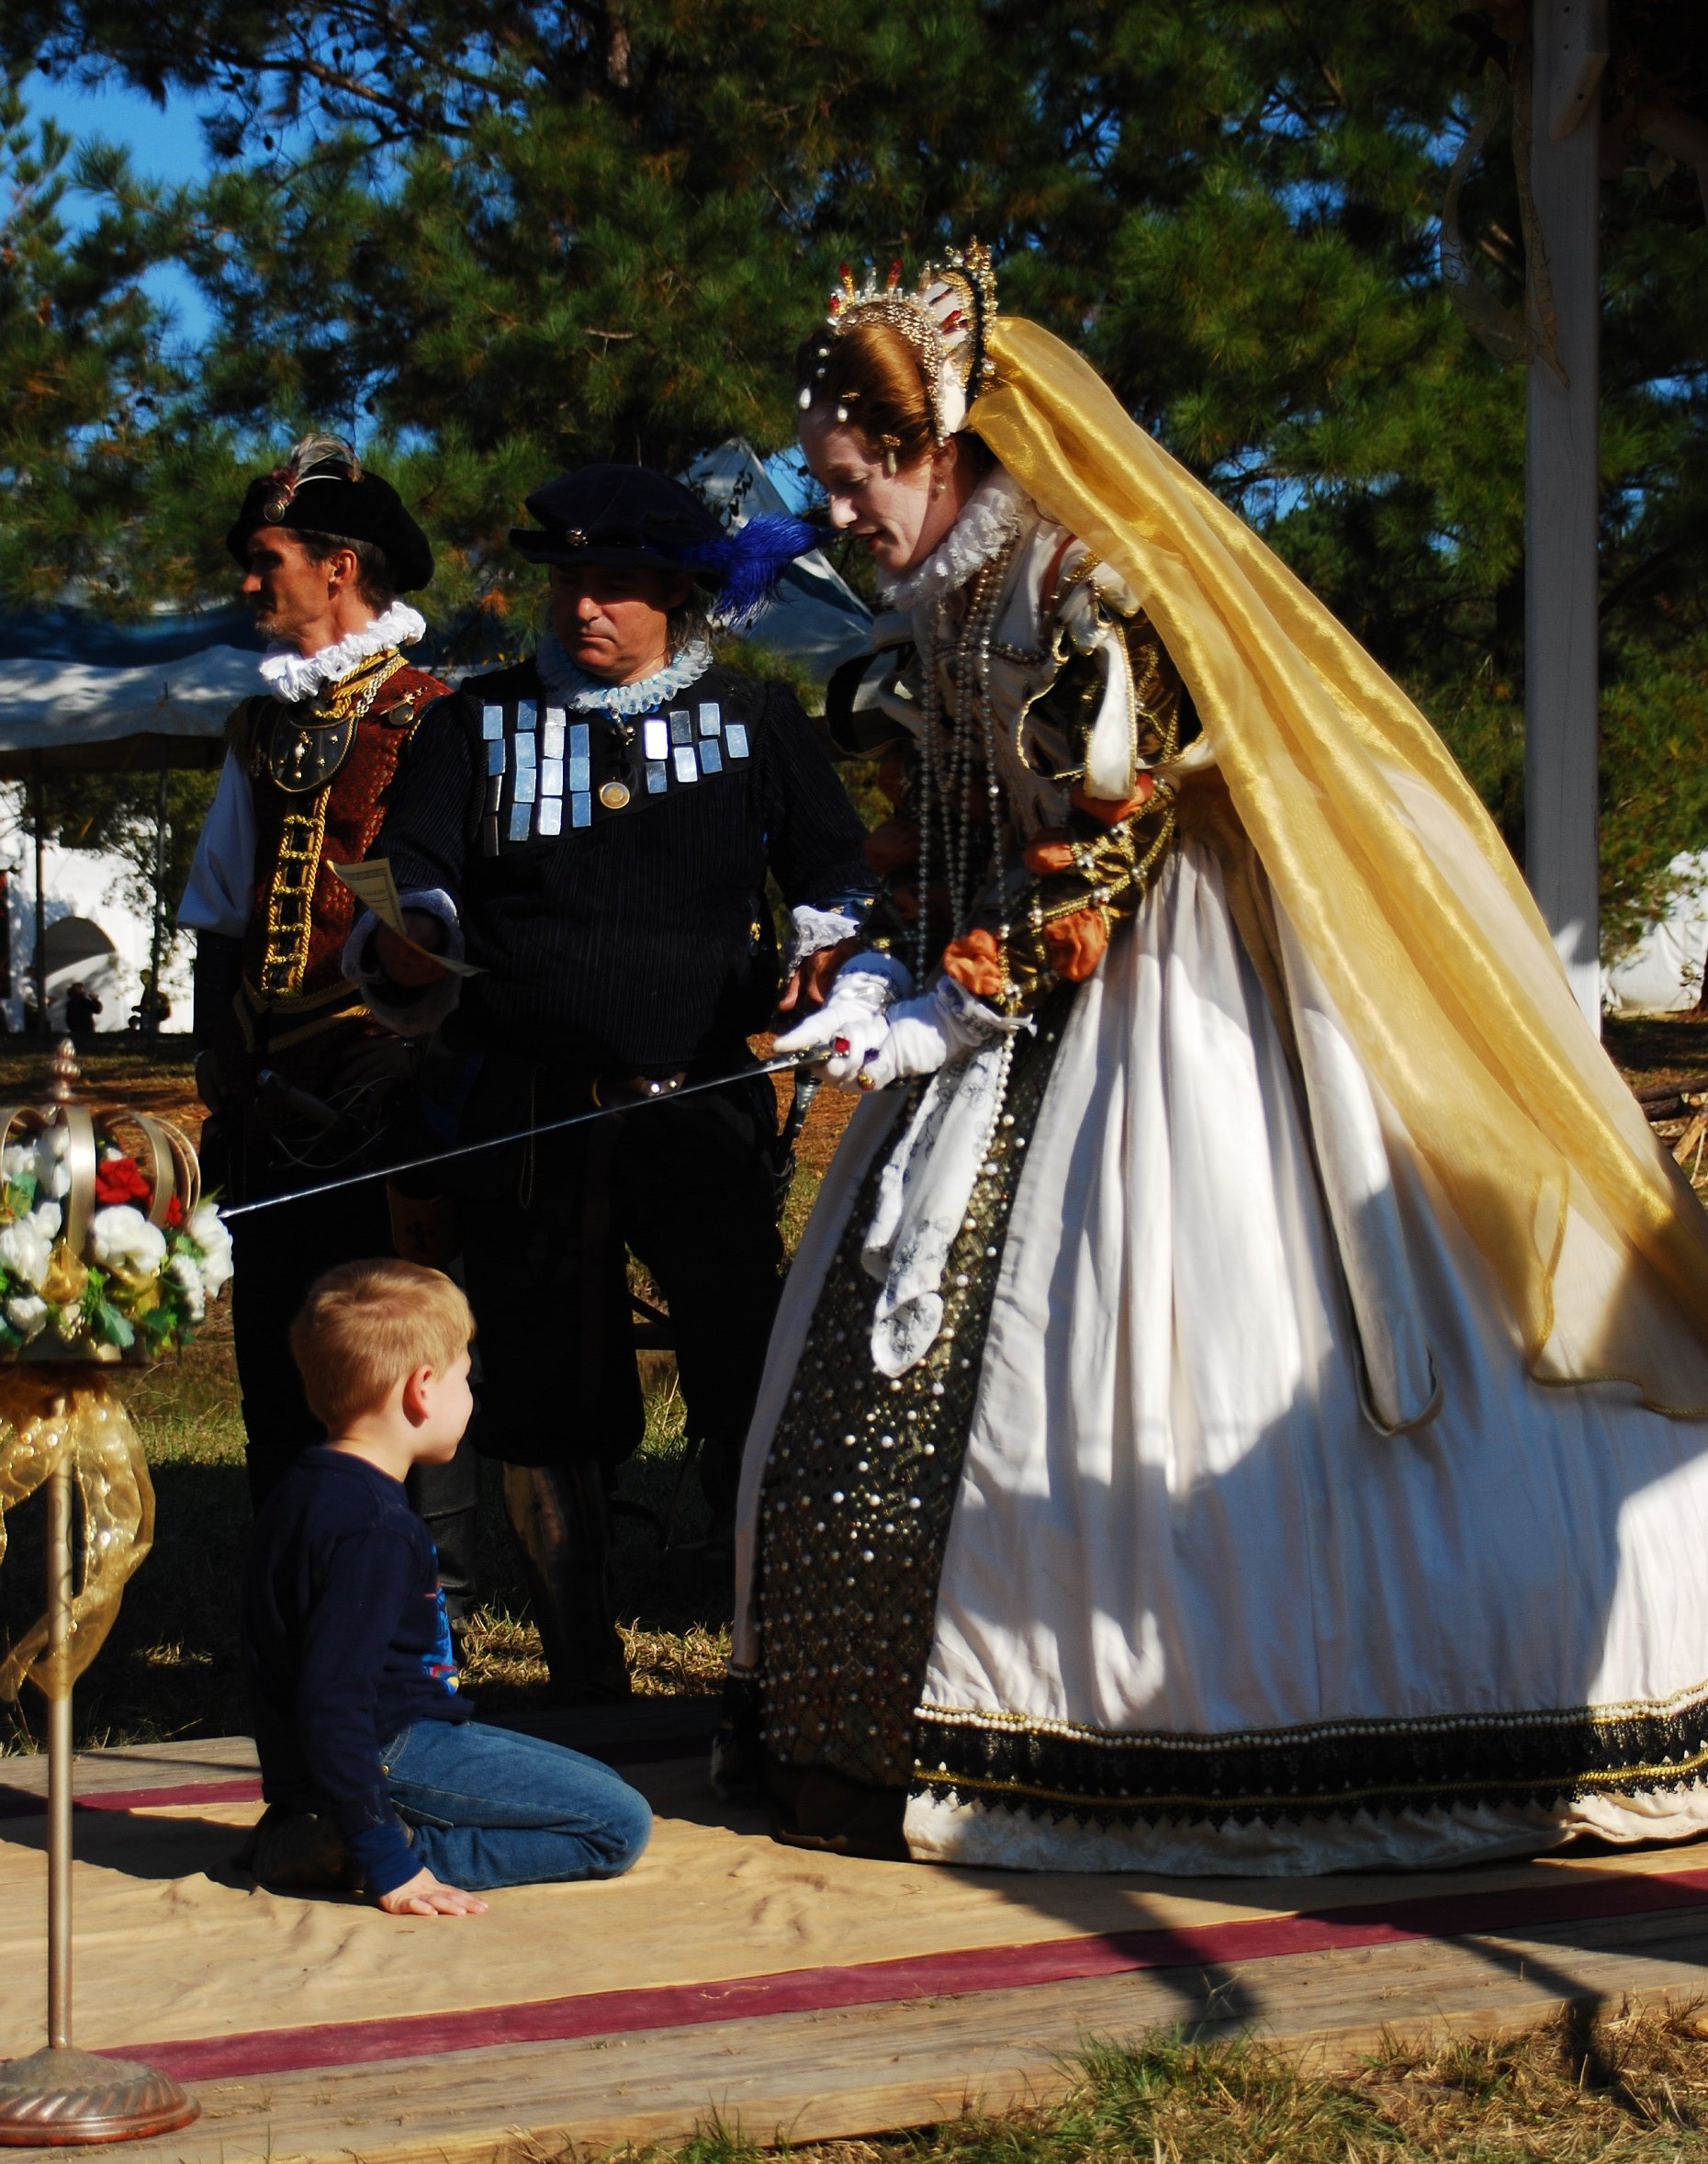 A Renaissance Festival enactment of Queen Elizabeth knighting a boy